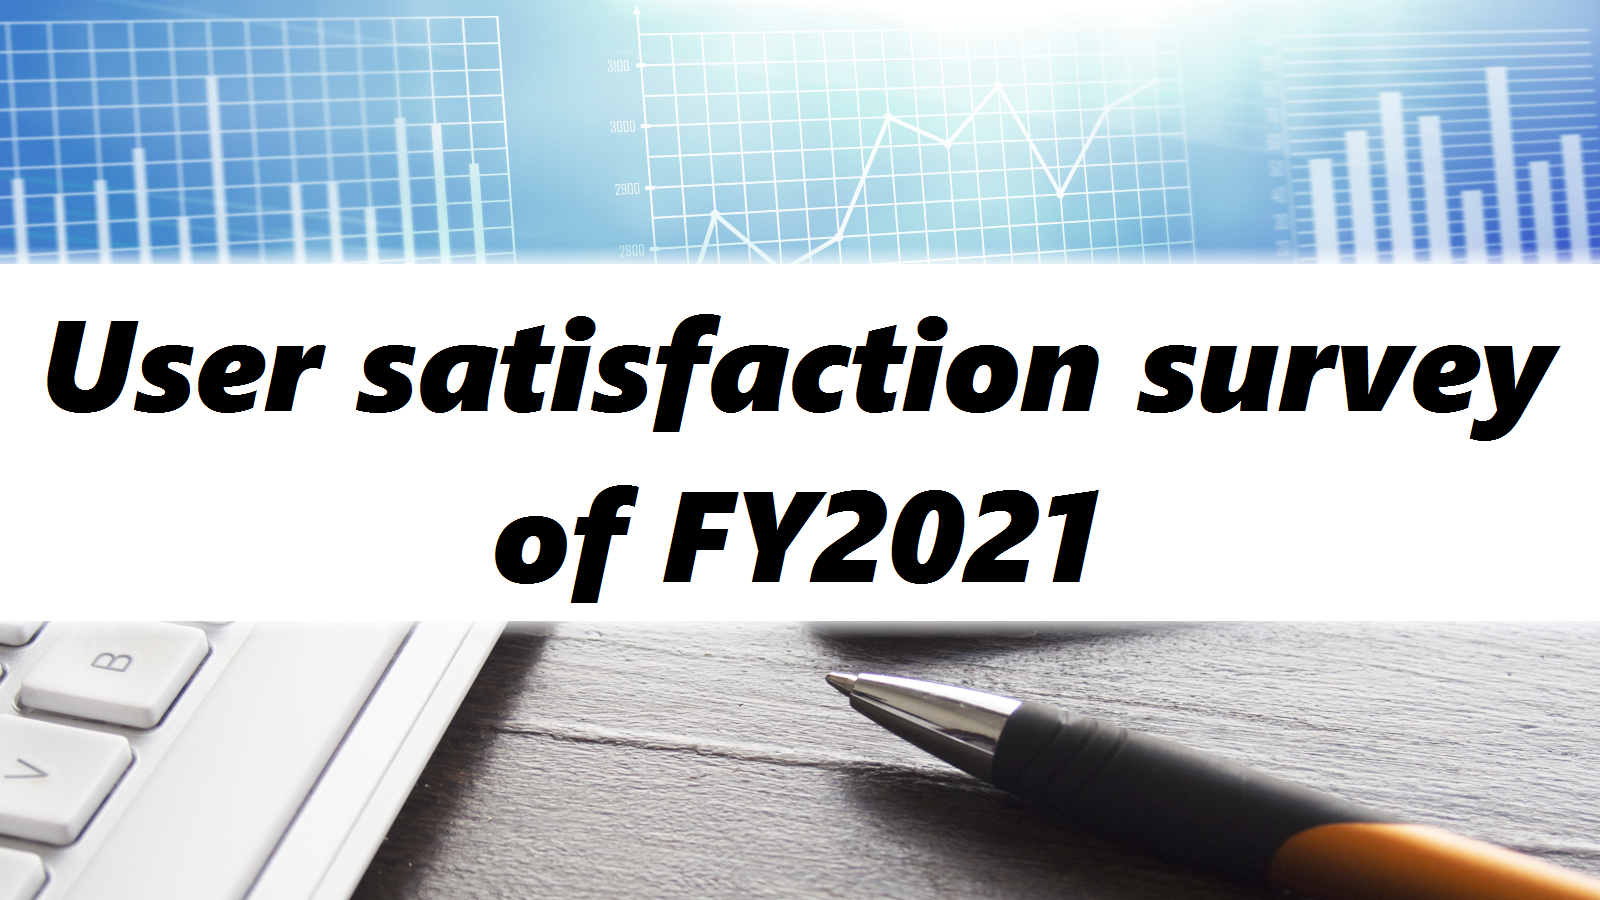 User satisfaction survey of FY2021